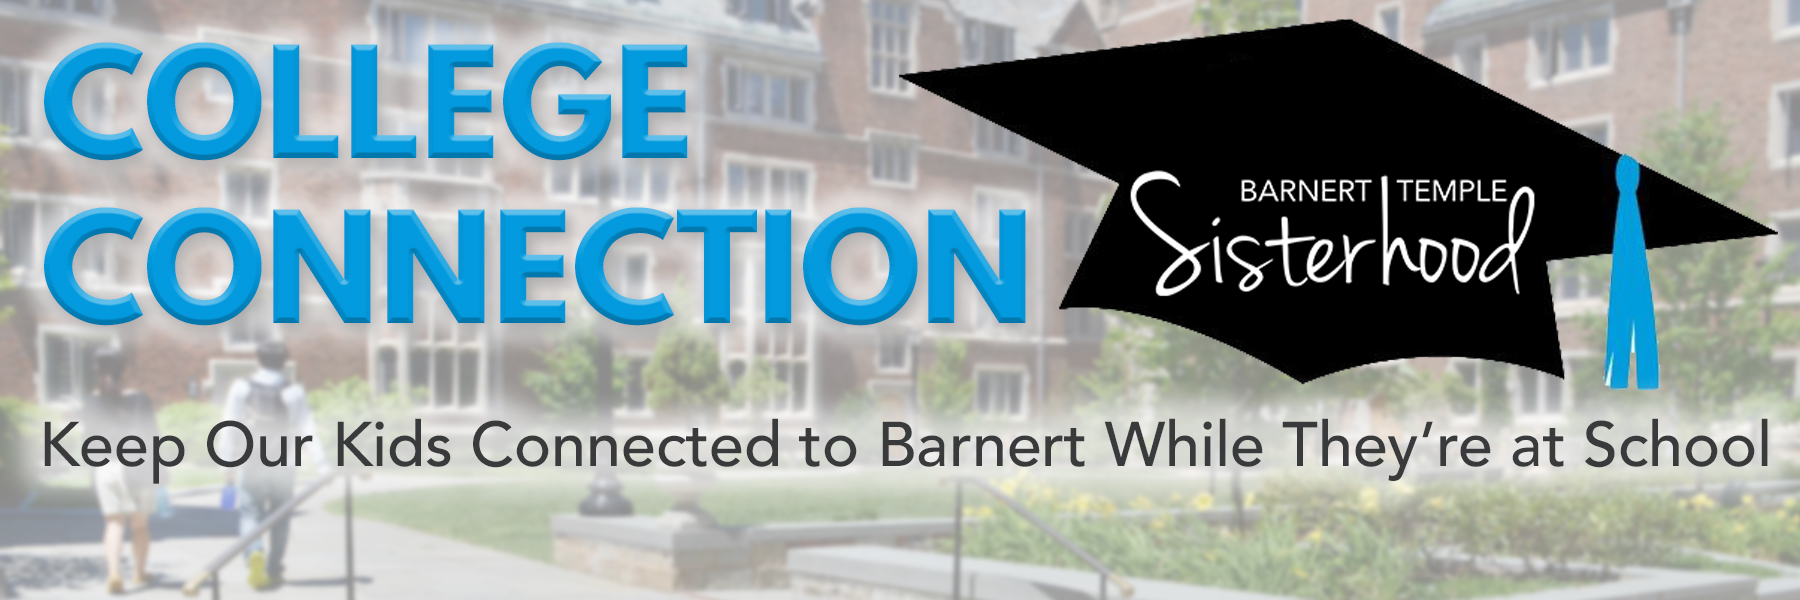 "<a href=""https://www.barnerttemple.org/collegeconnection#""